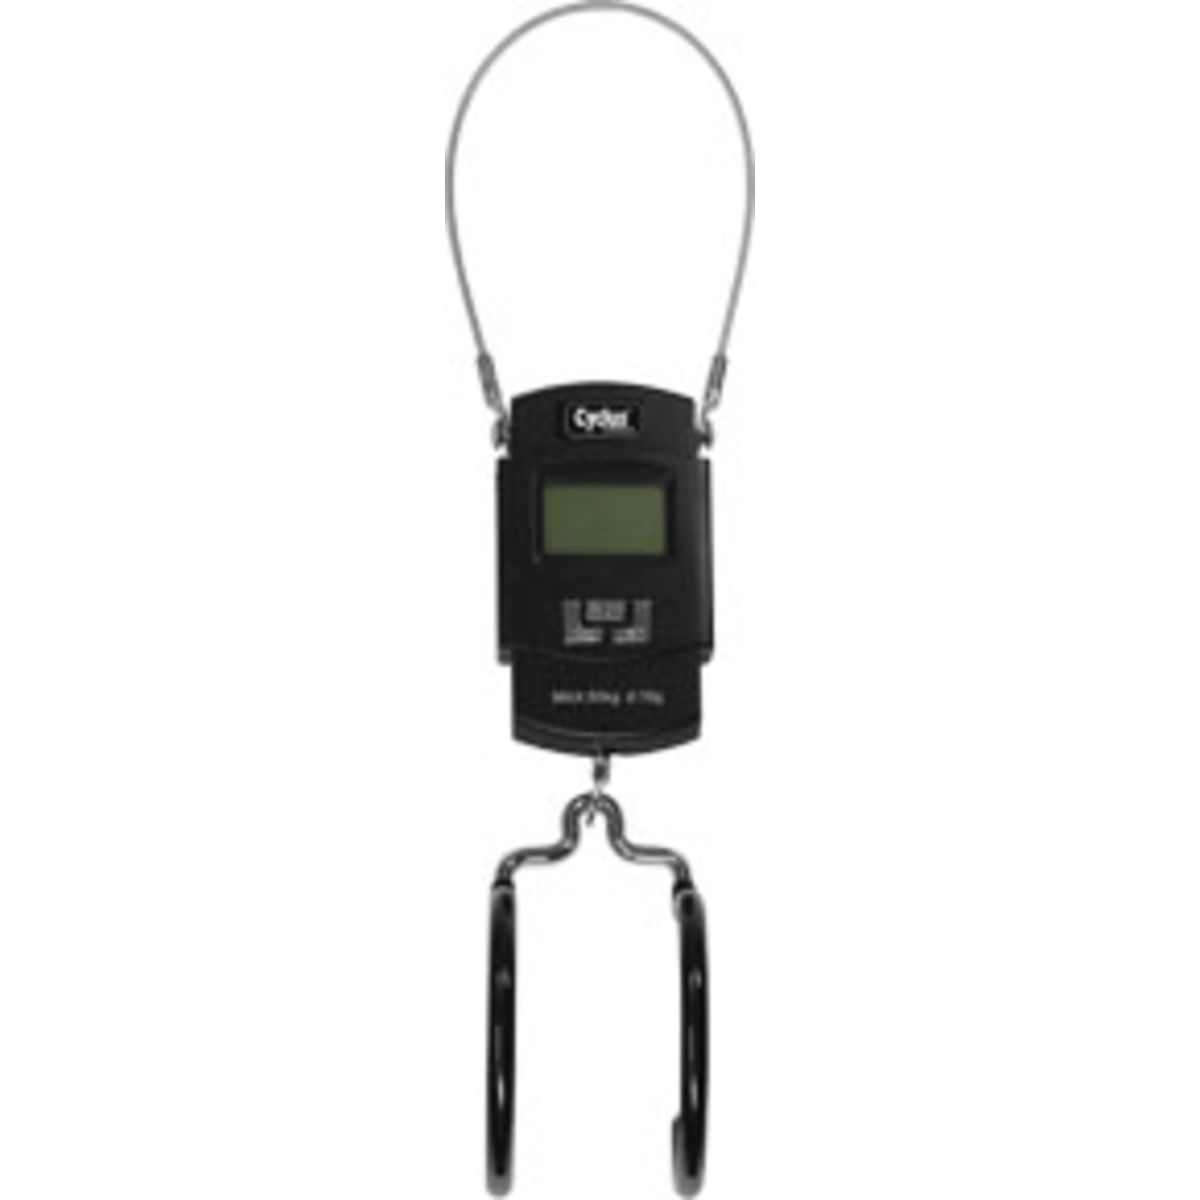 Digital hanging scale 50 kg